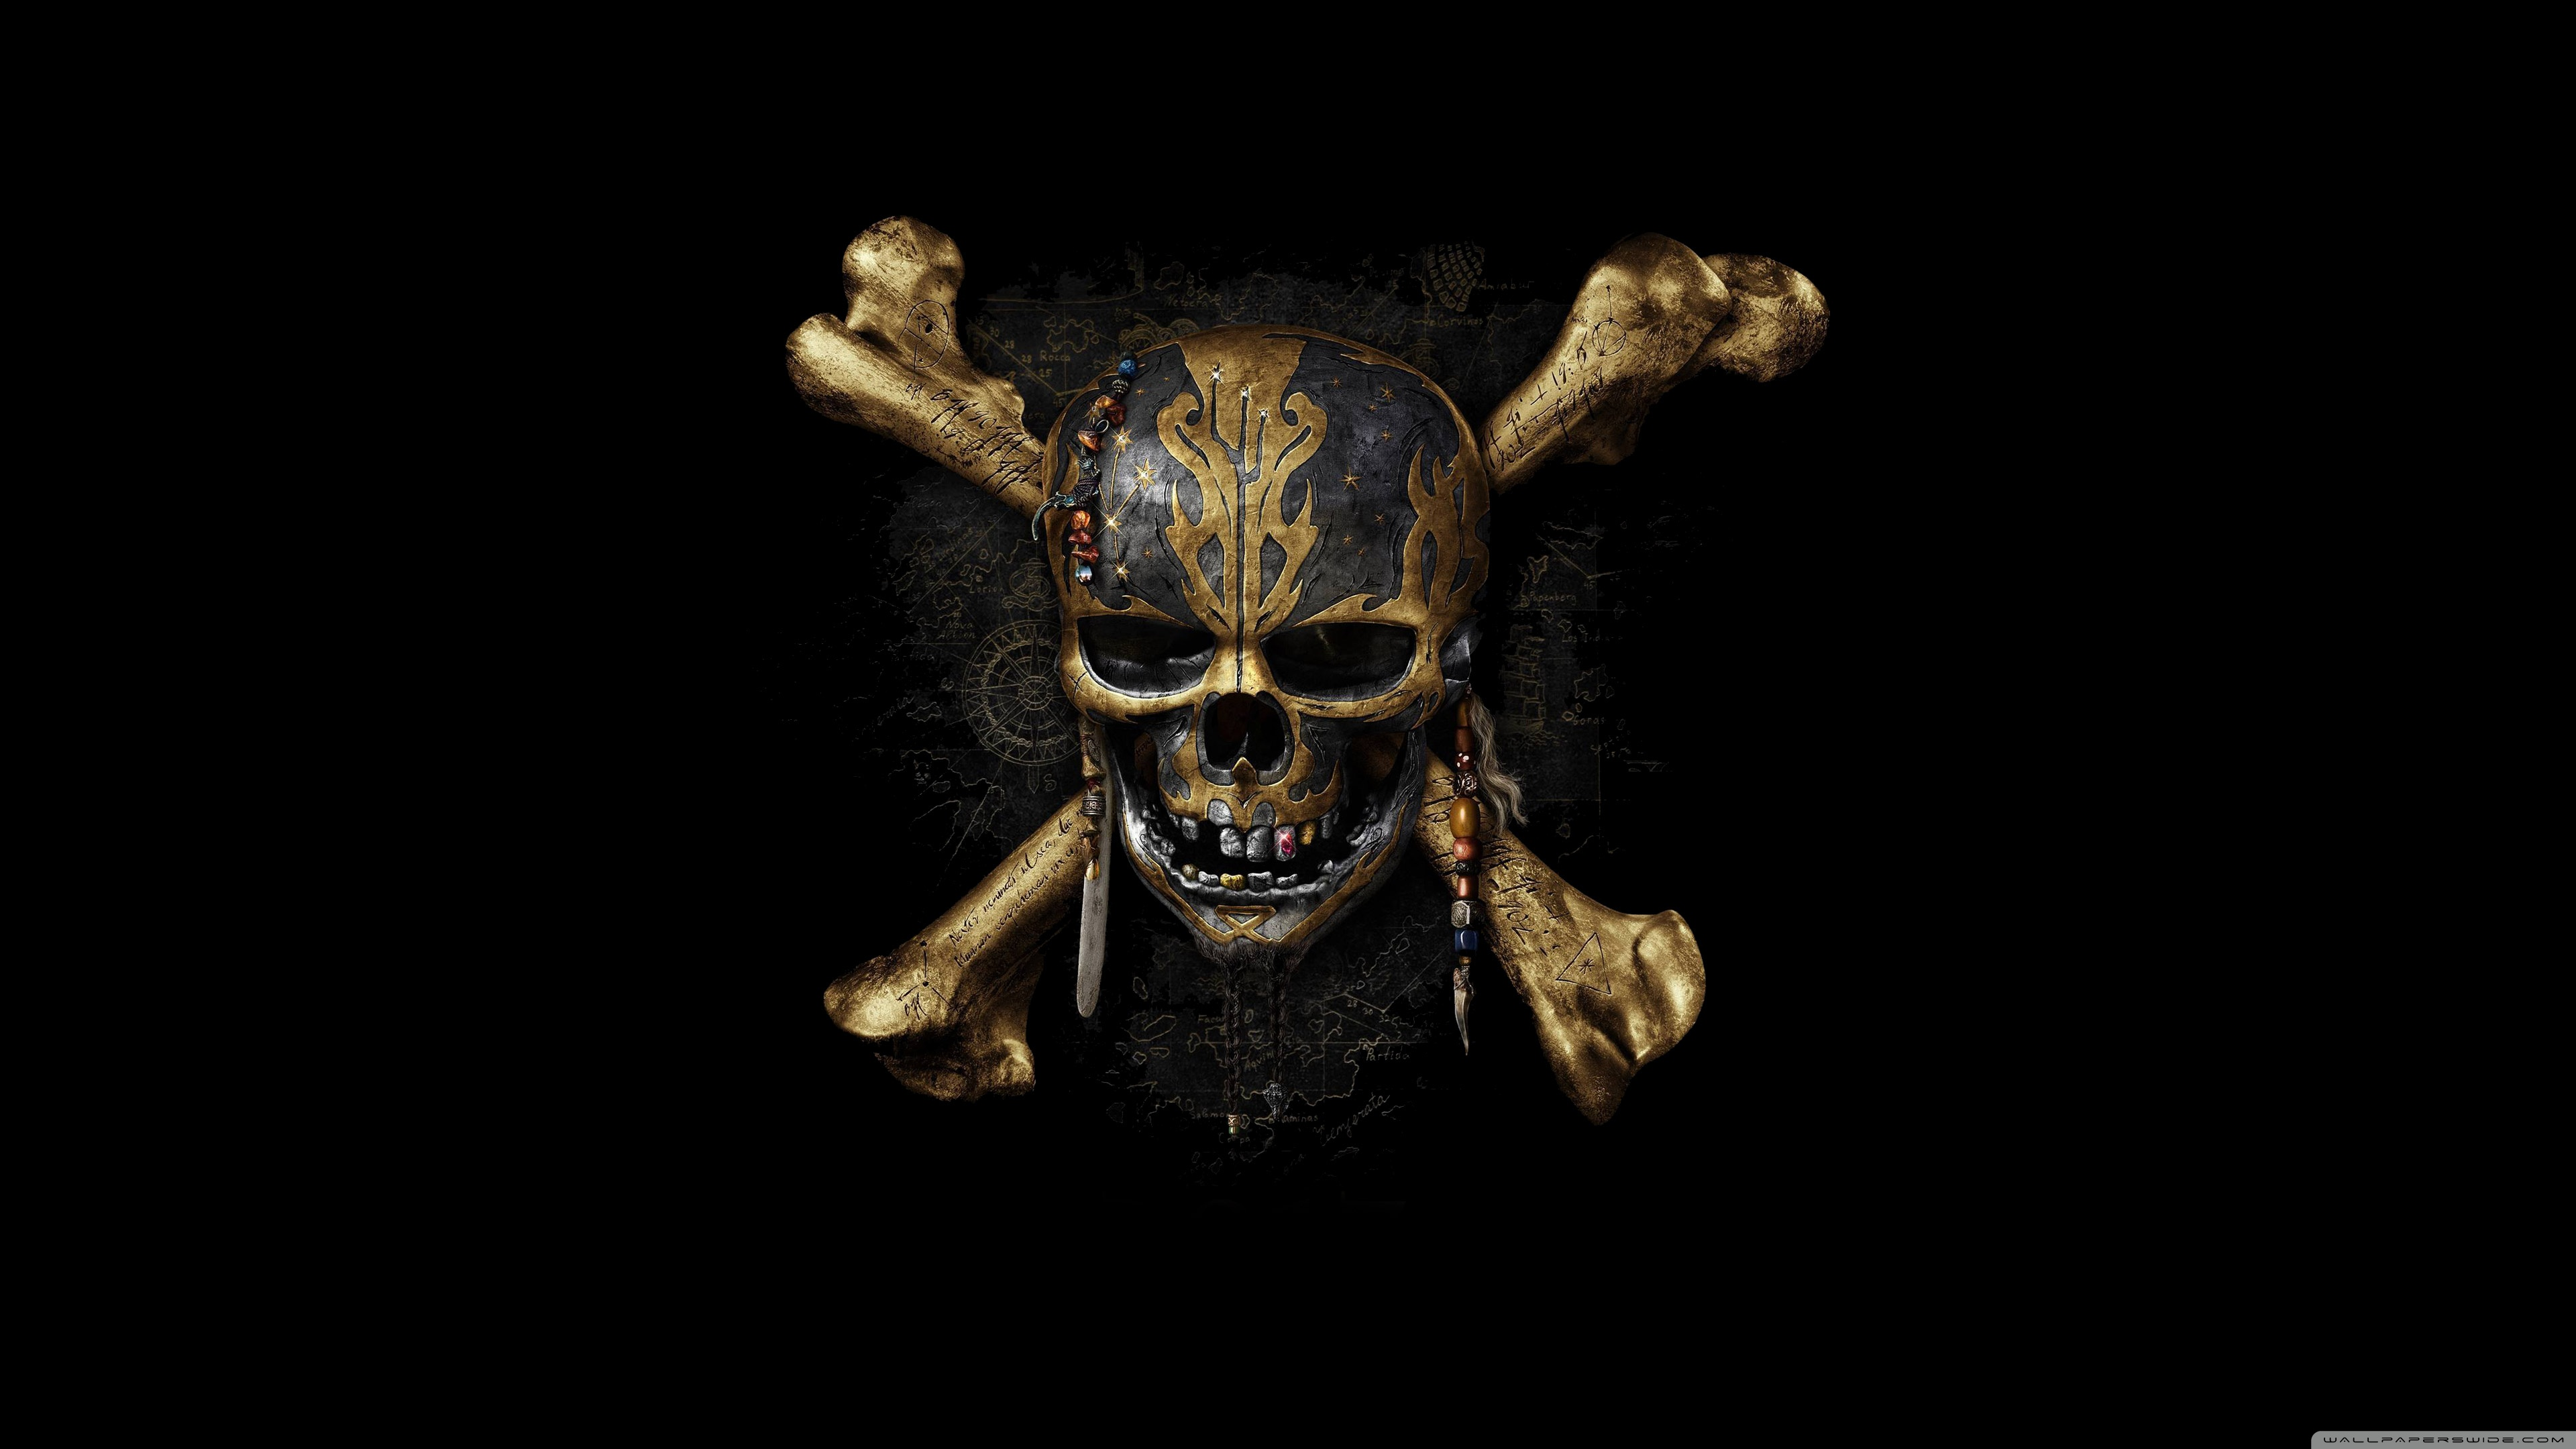 wallpaperswide | pirates of the caribbean hd desktop